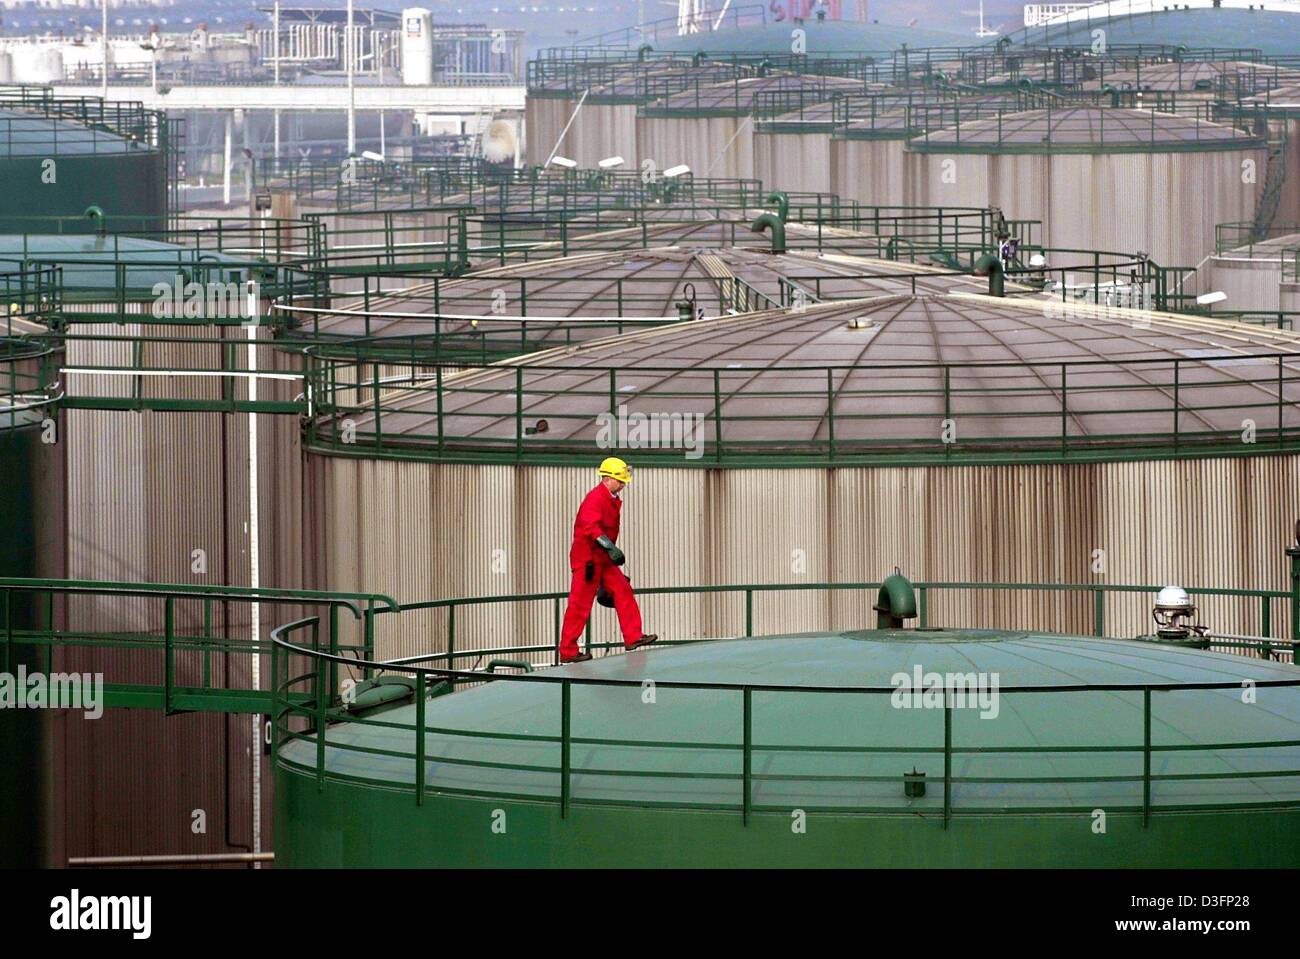 (dpa) - A worker walks across a giant oil tanks filled with petrol and crude oil  in a section of the harbour in - Stock Image